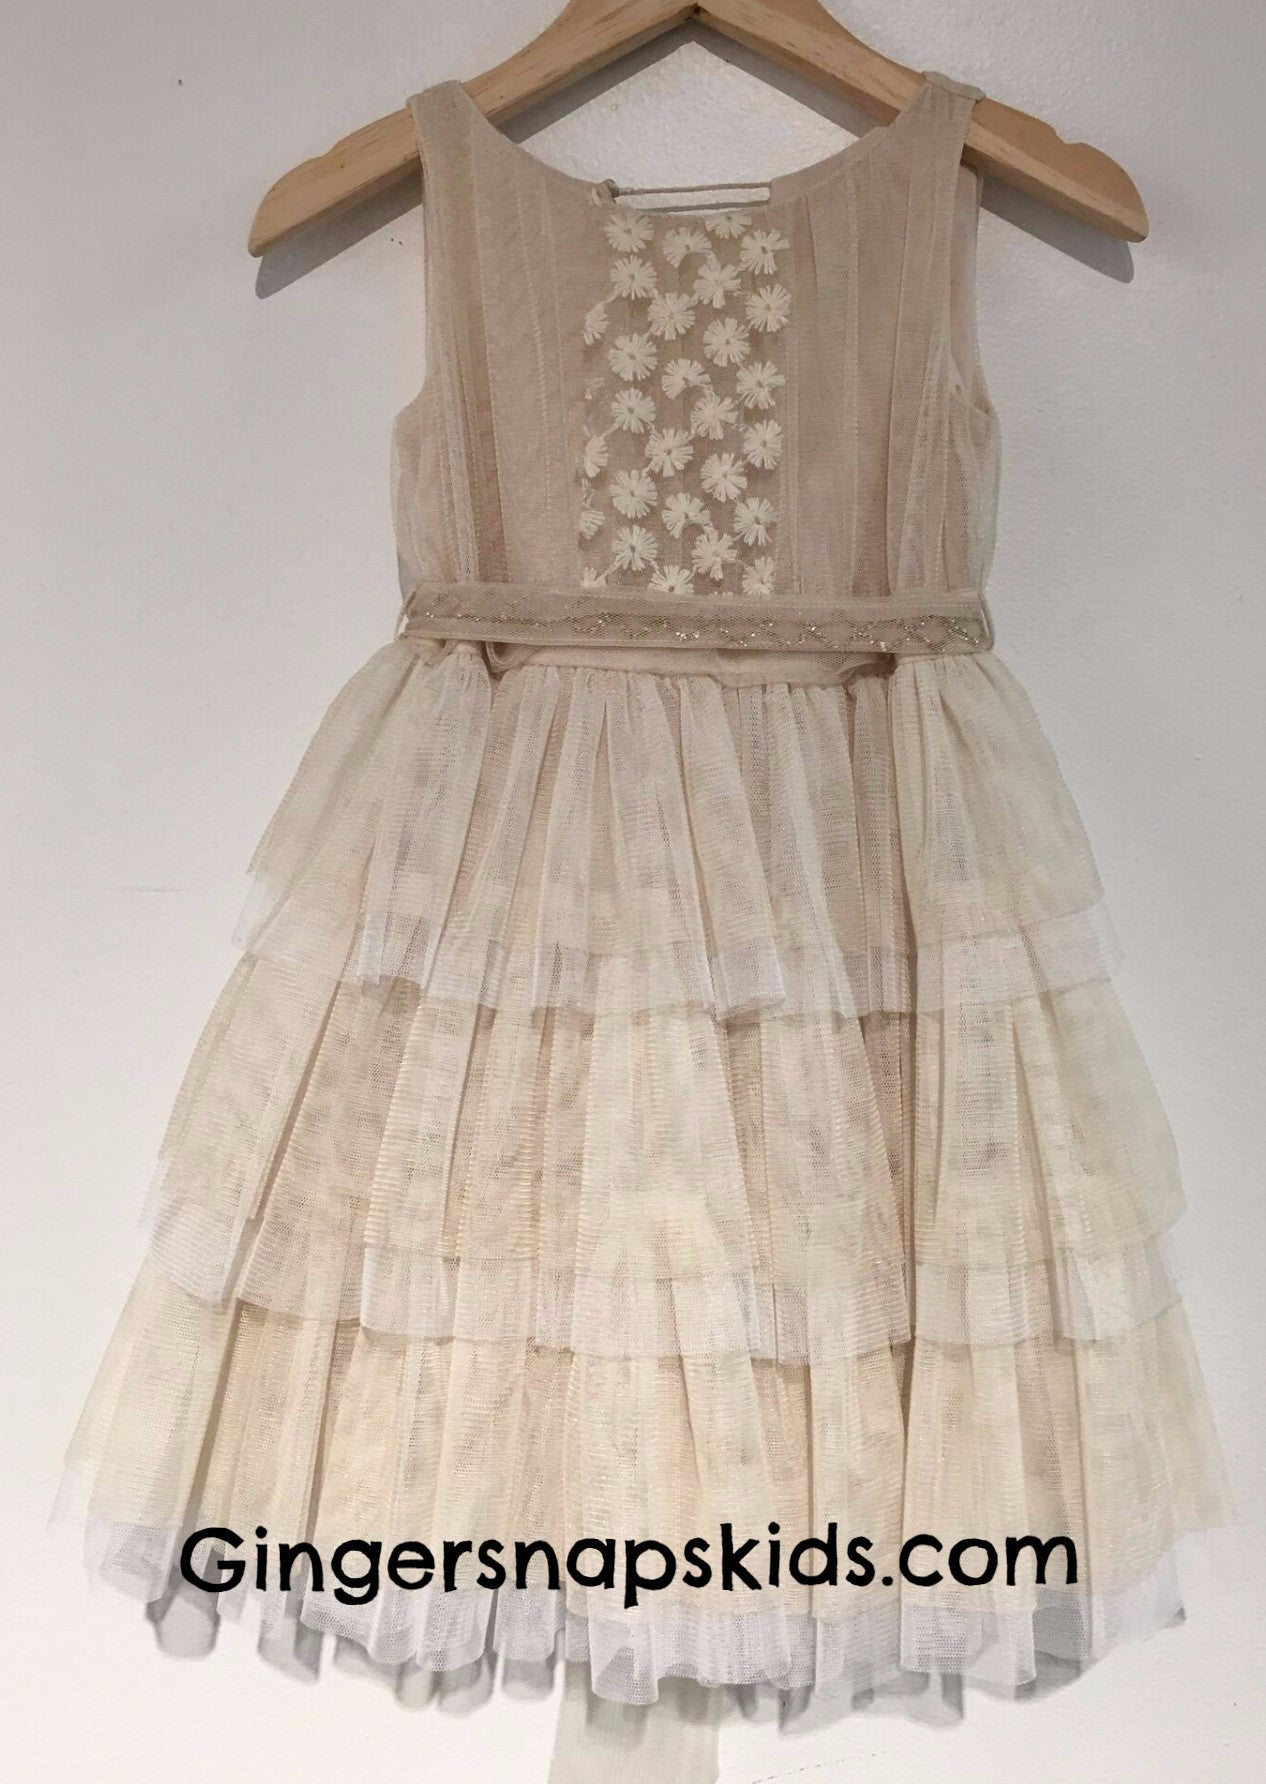 Luna Luna Chloe Antique White Tiered Dress (sz. 3-6)